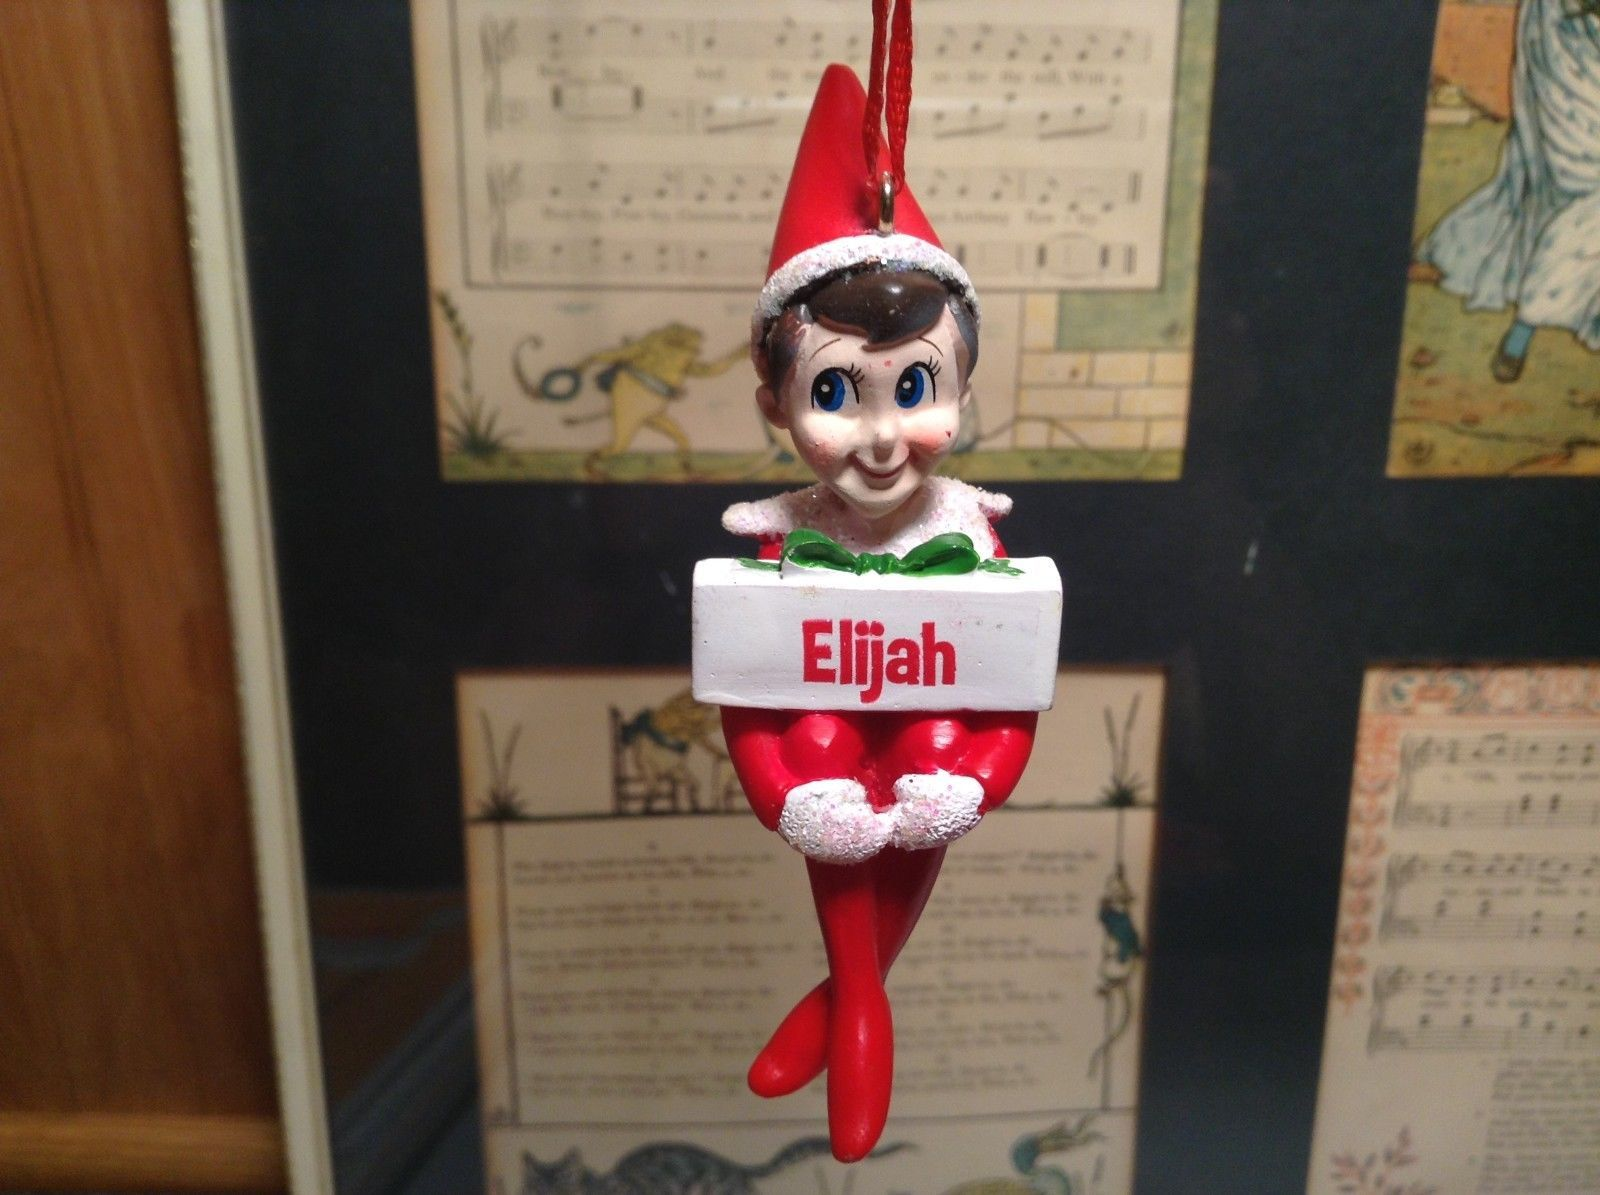 Dept 56 - Elf on the Shelf - Elf named Elijah Christmas Ornament